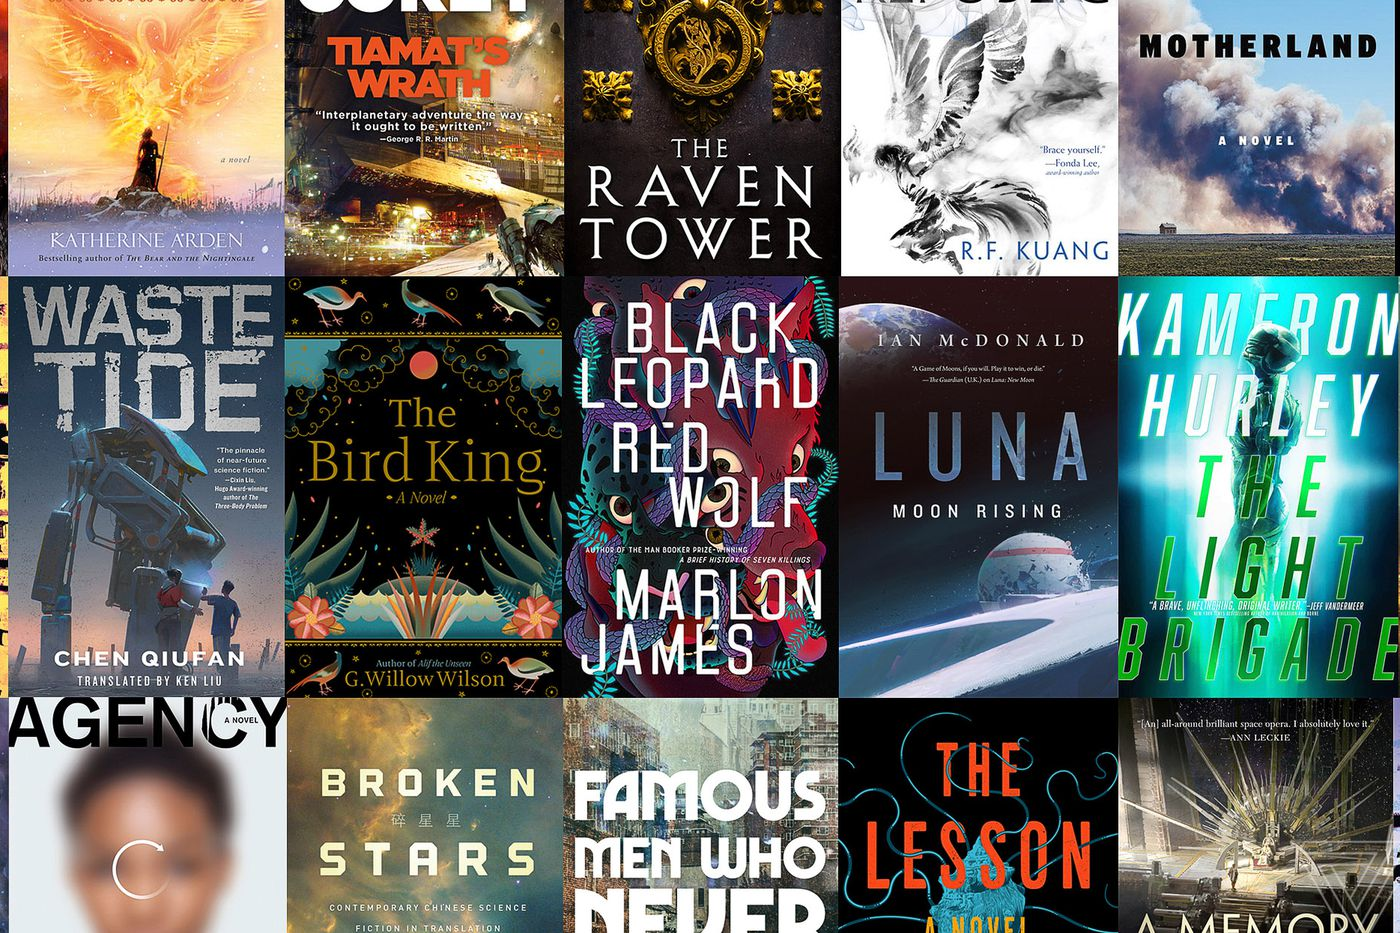 All the science fiction and fantasy books we're looking forward to